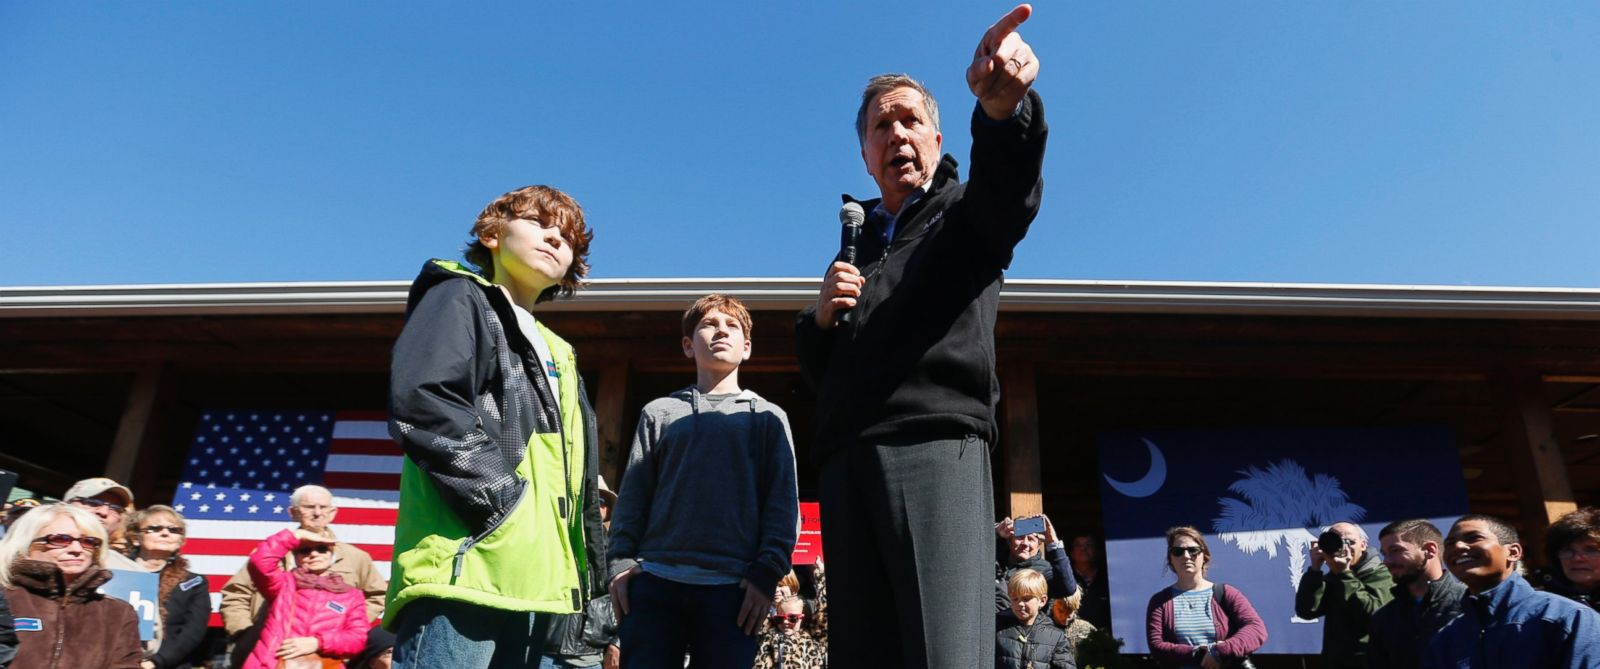 PHOTO:John Kasich speaks with children during a campaign stop, Feb. 13, 2016, in Mauldin, S.C.